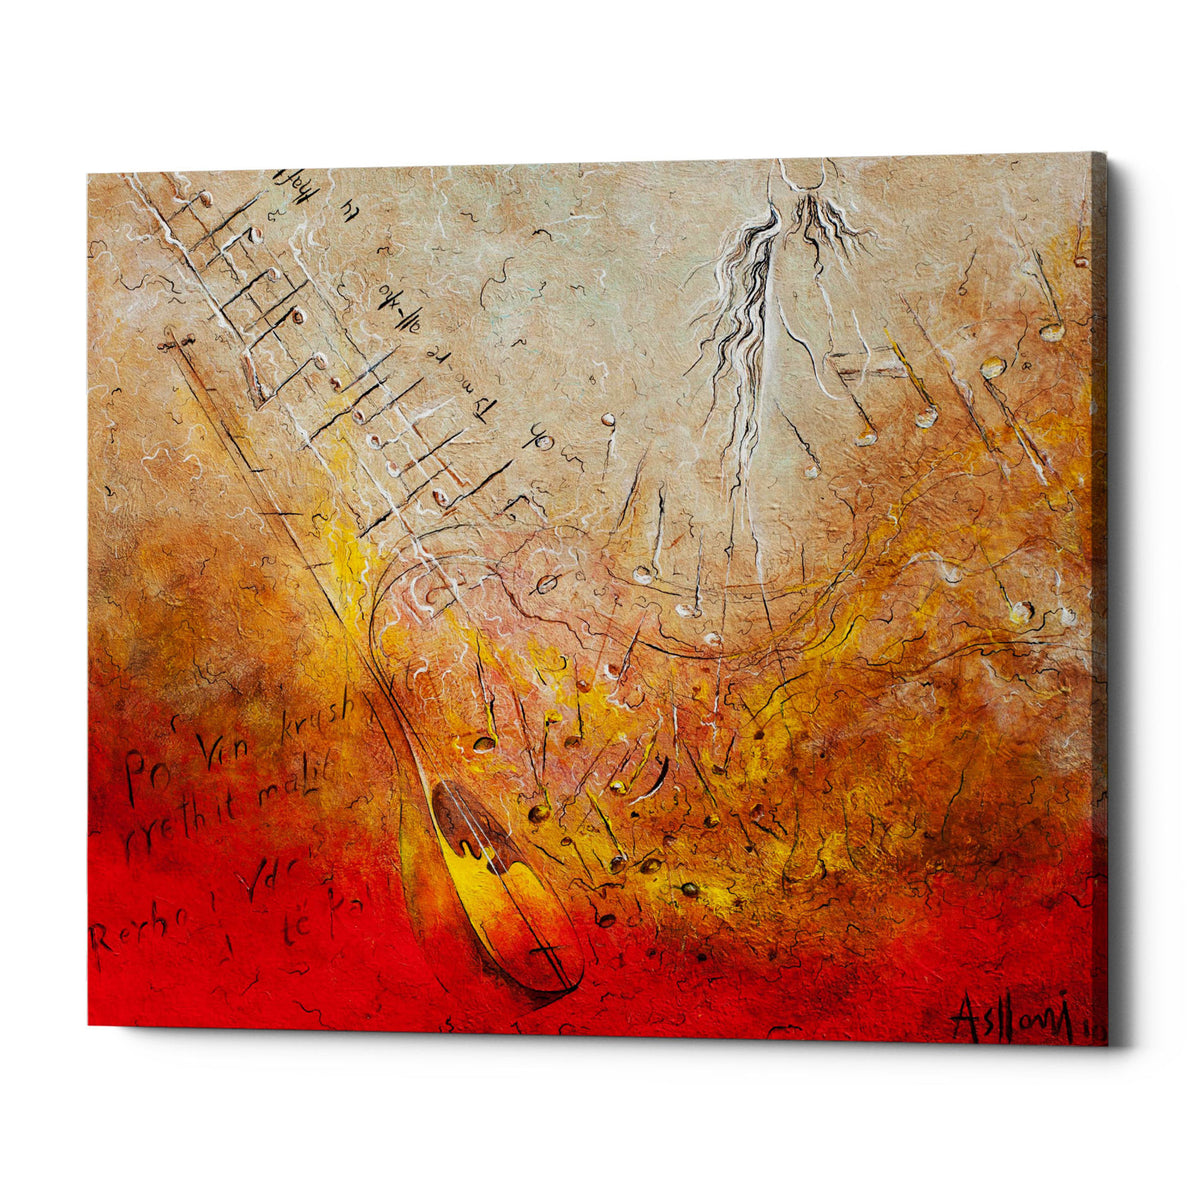 "Epic Graffiti ""Song of Rexha"" by Samedin Asllani, Giclee Canvas Wall Art"